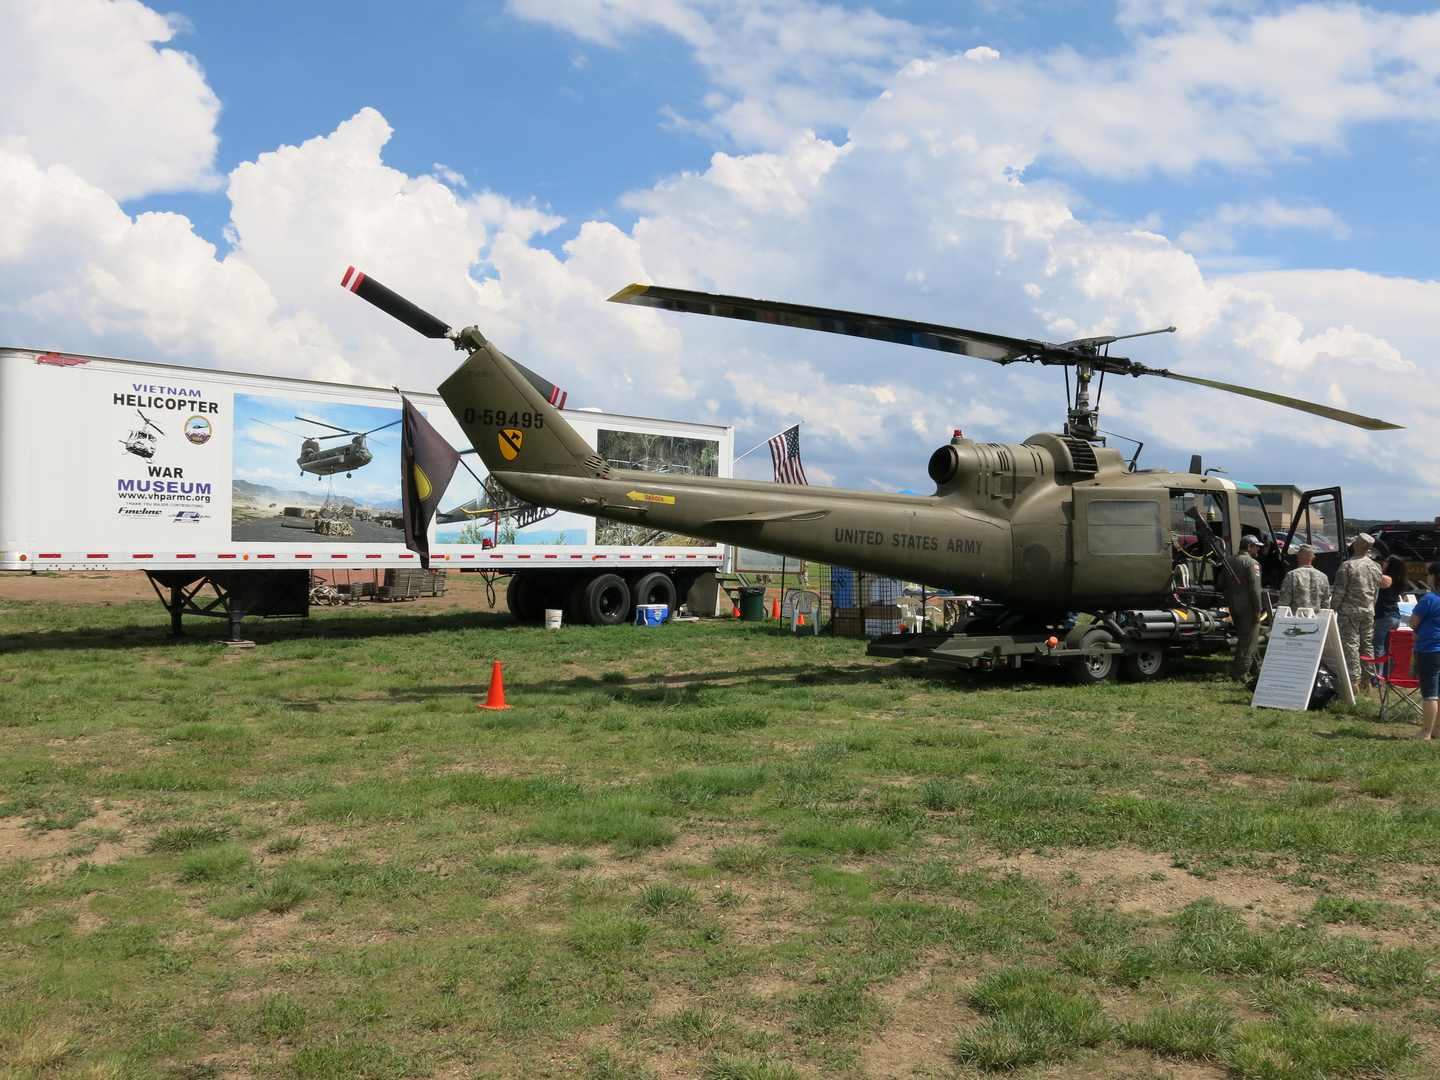 helicopter war museum